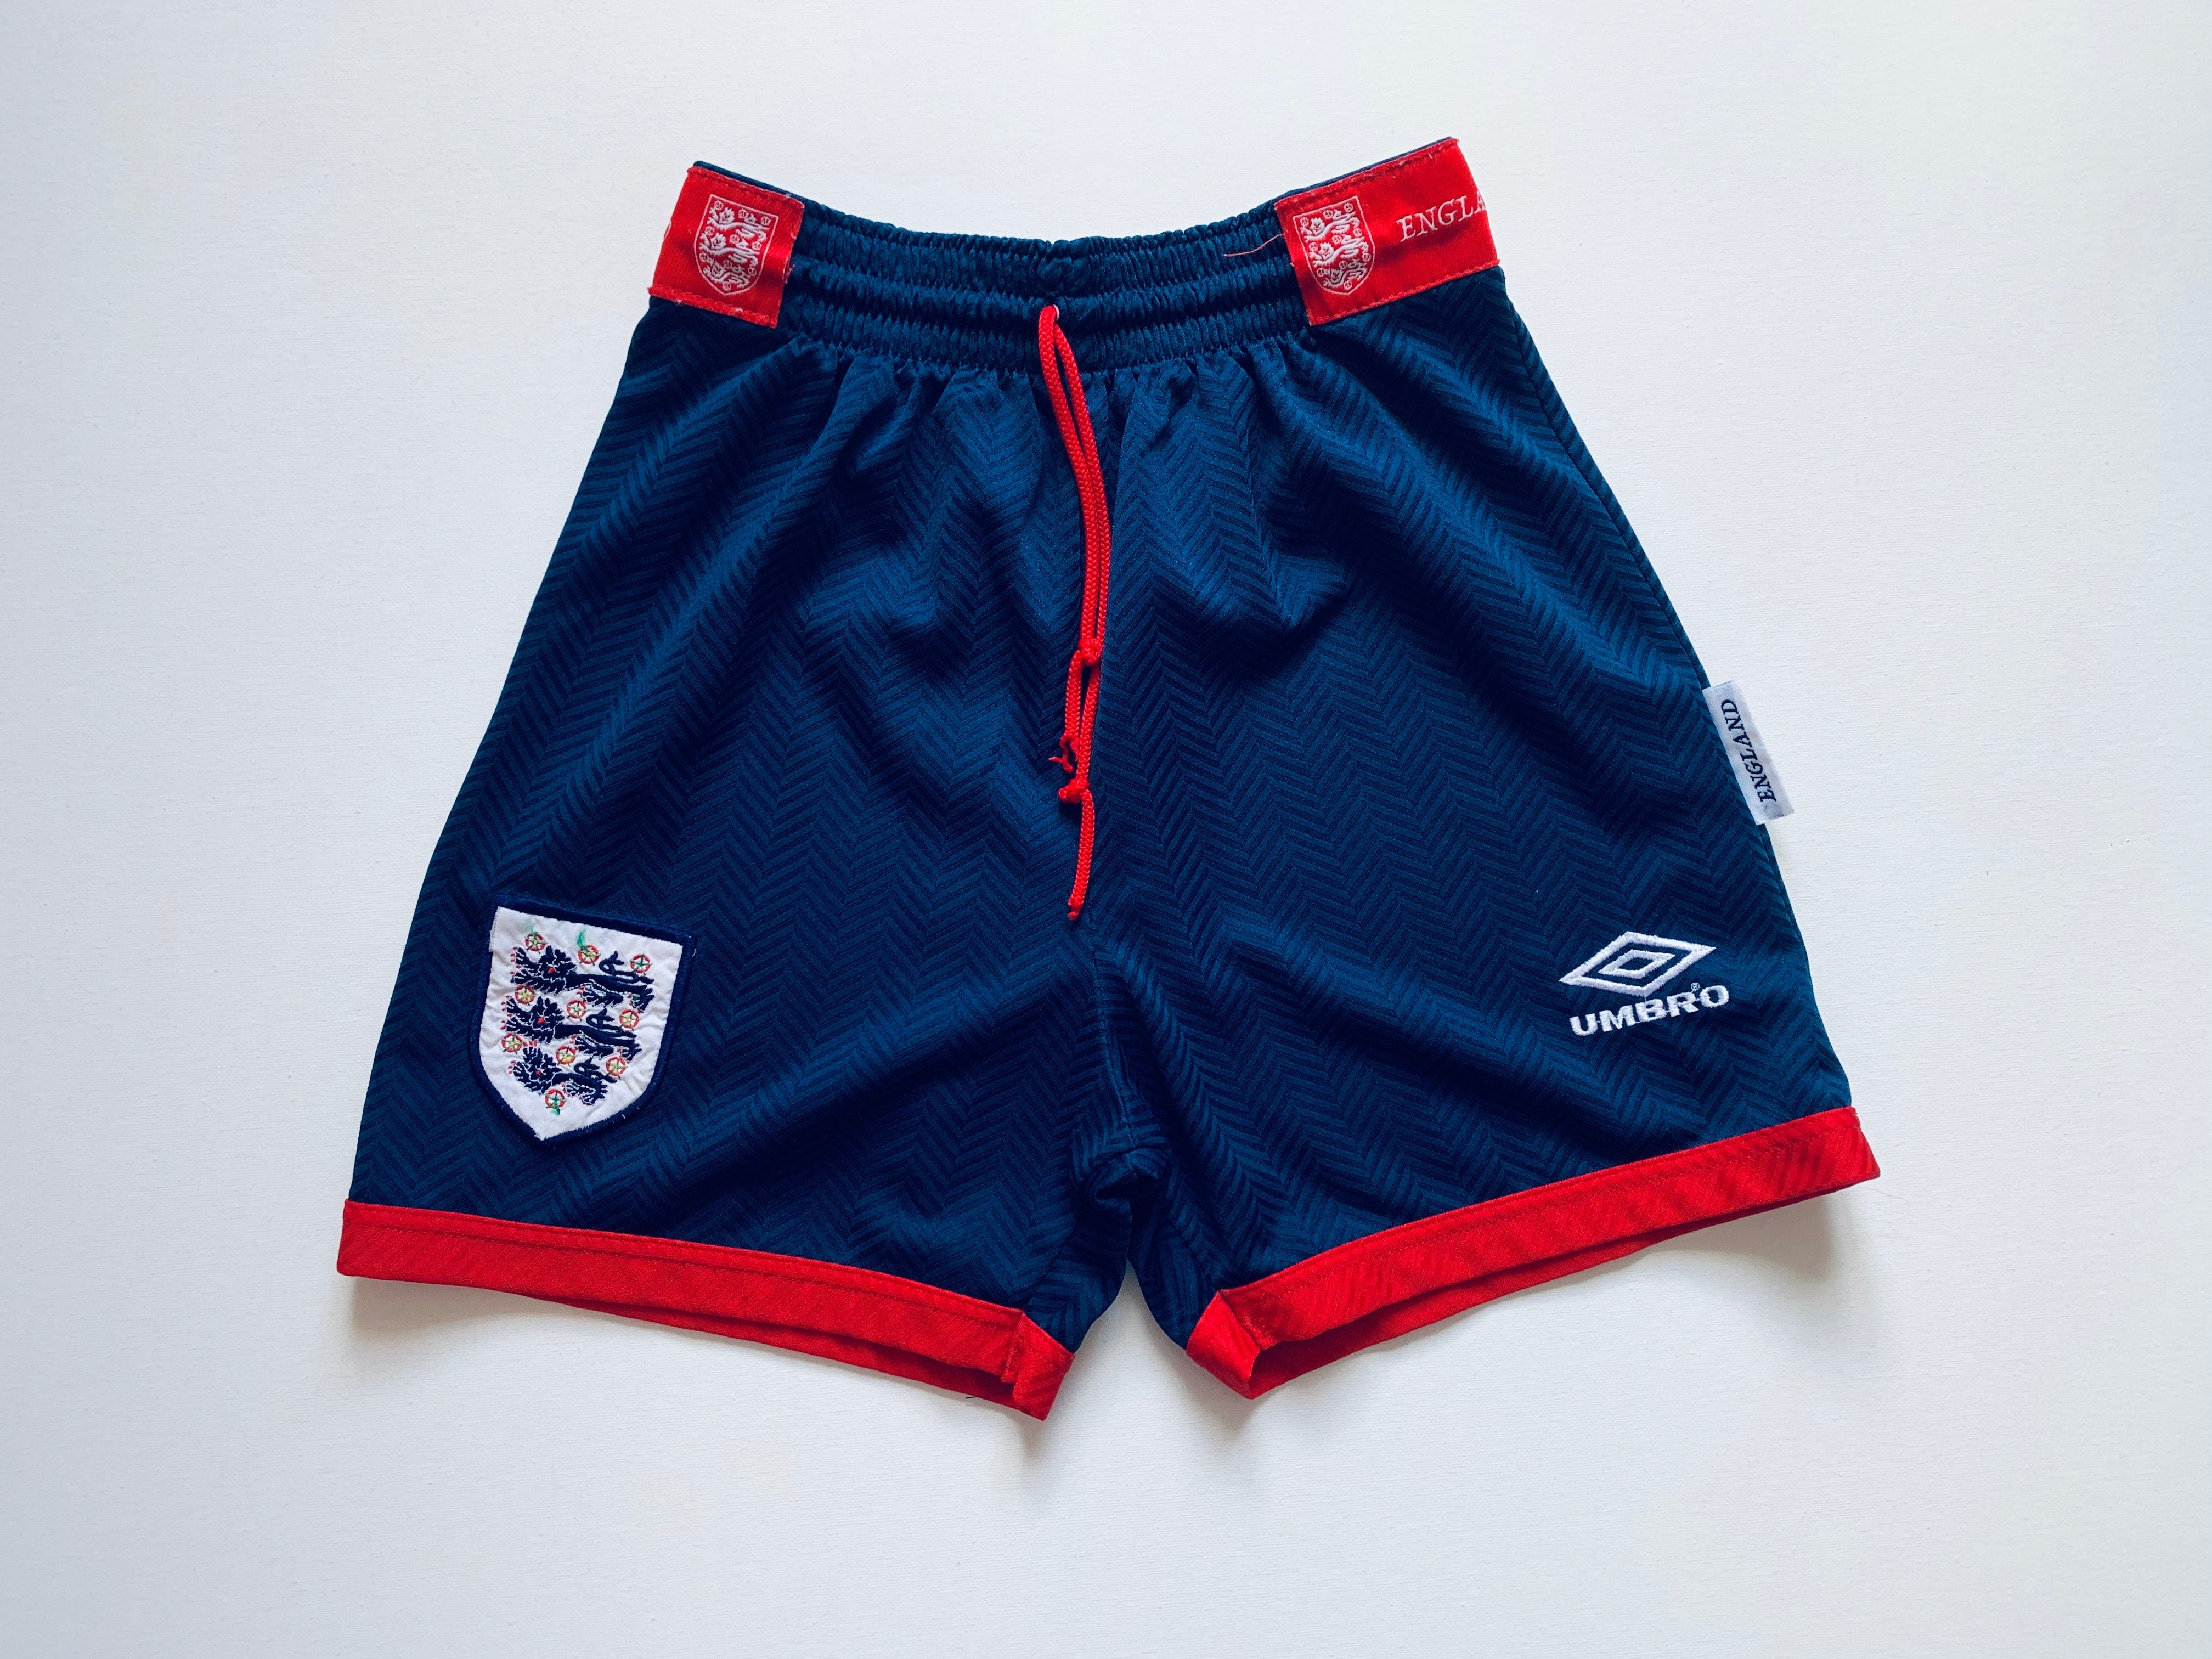 1993/94 England Home Shorts (S)